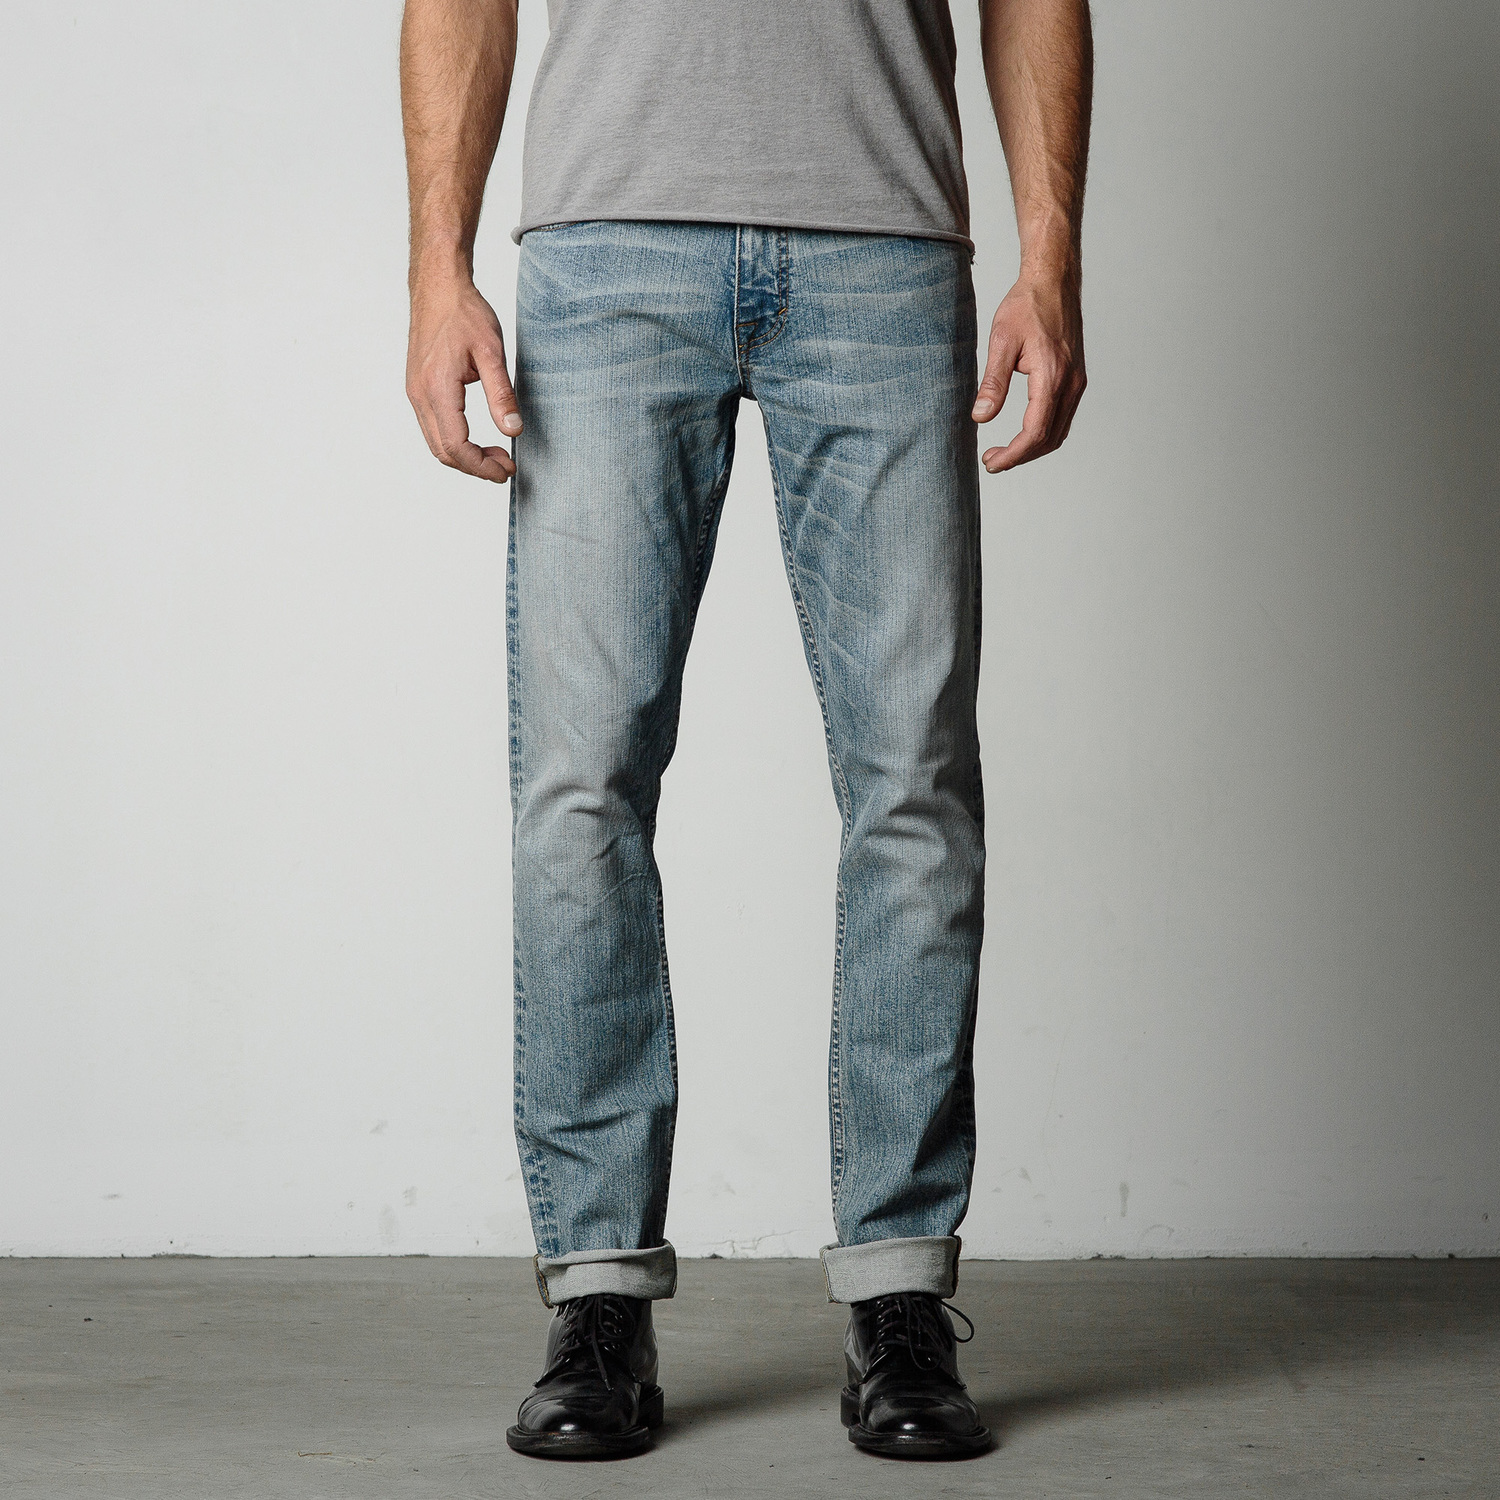 Mens Slim Jeans In Light Wash | DSTLD